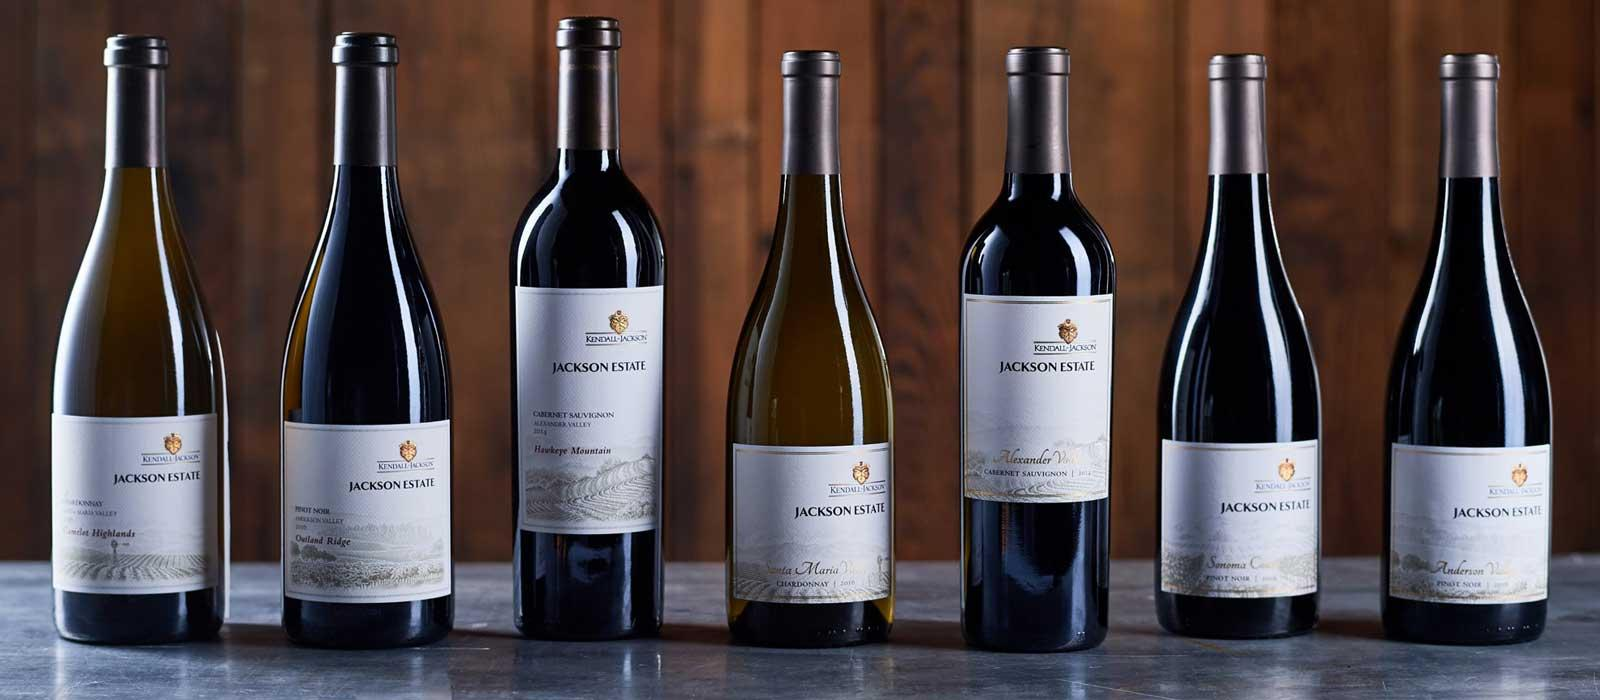 Kendall-Jackson Jackson Estate Wine Collection